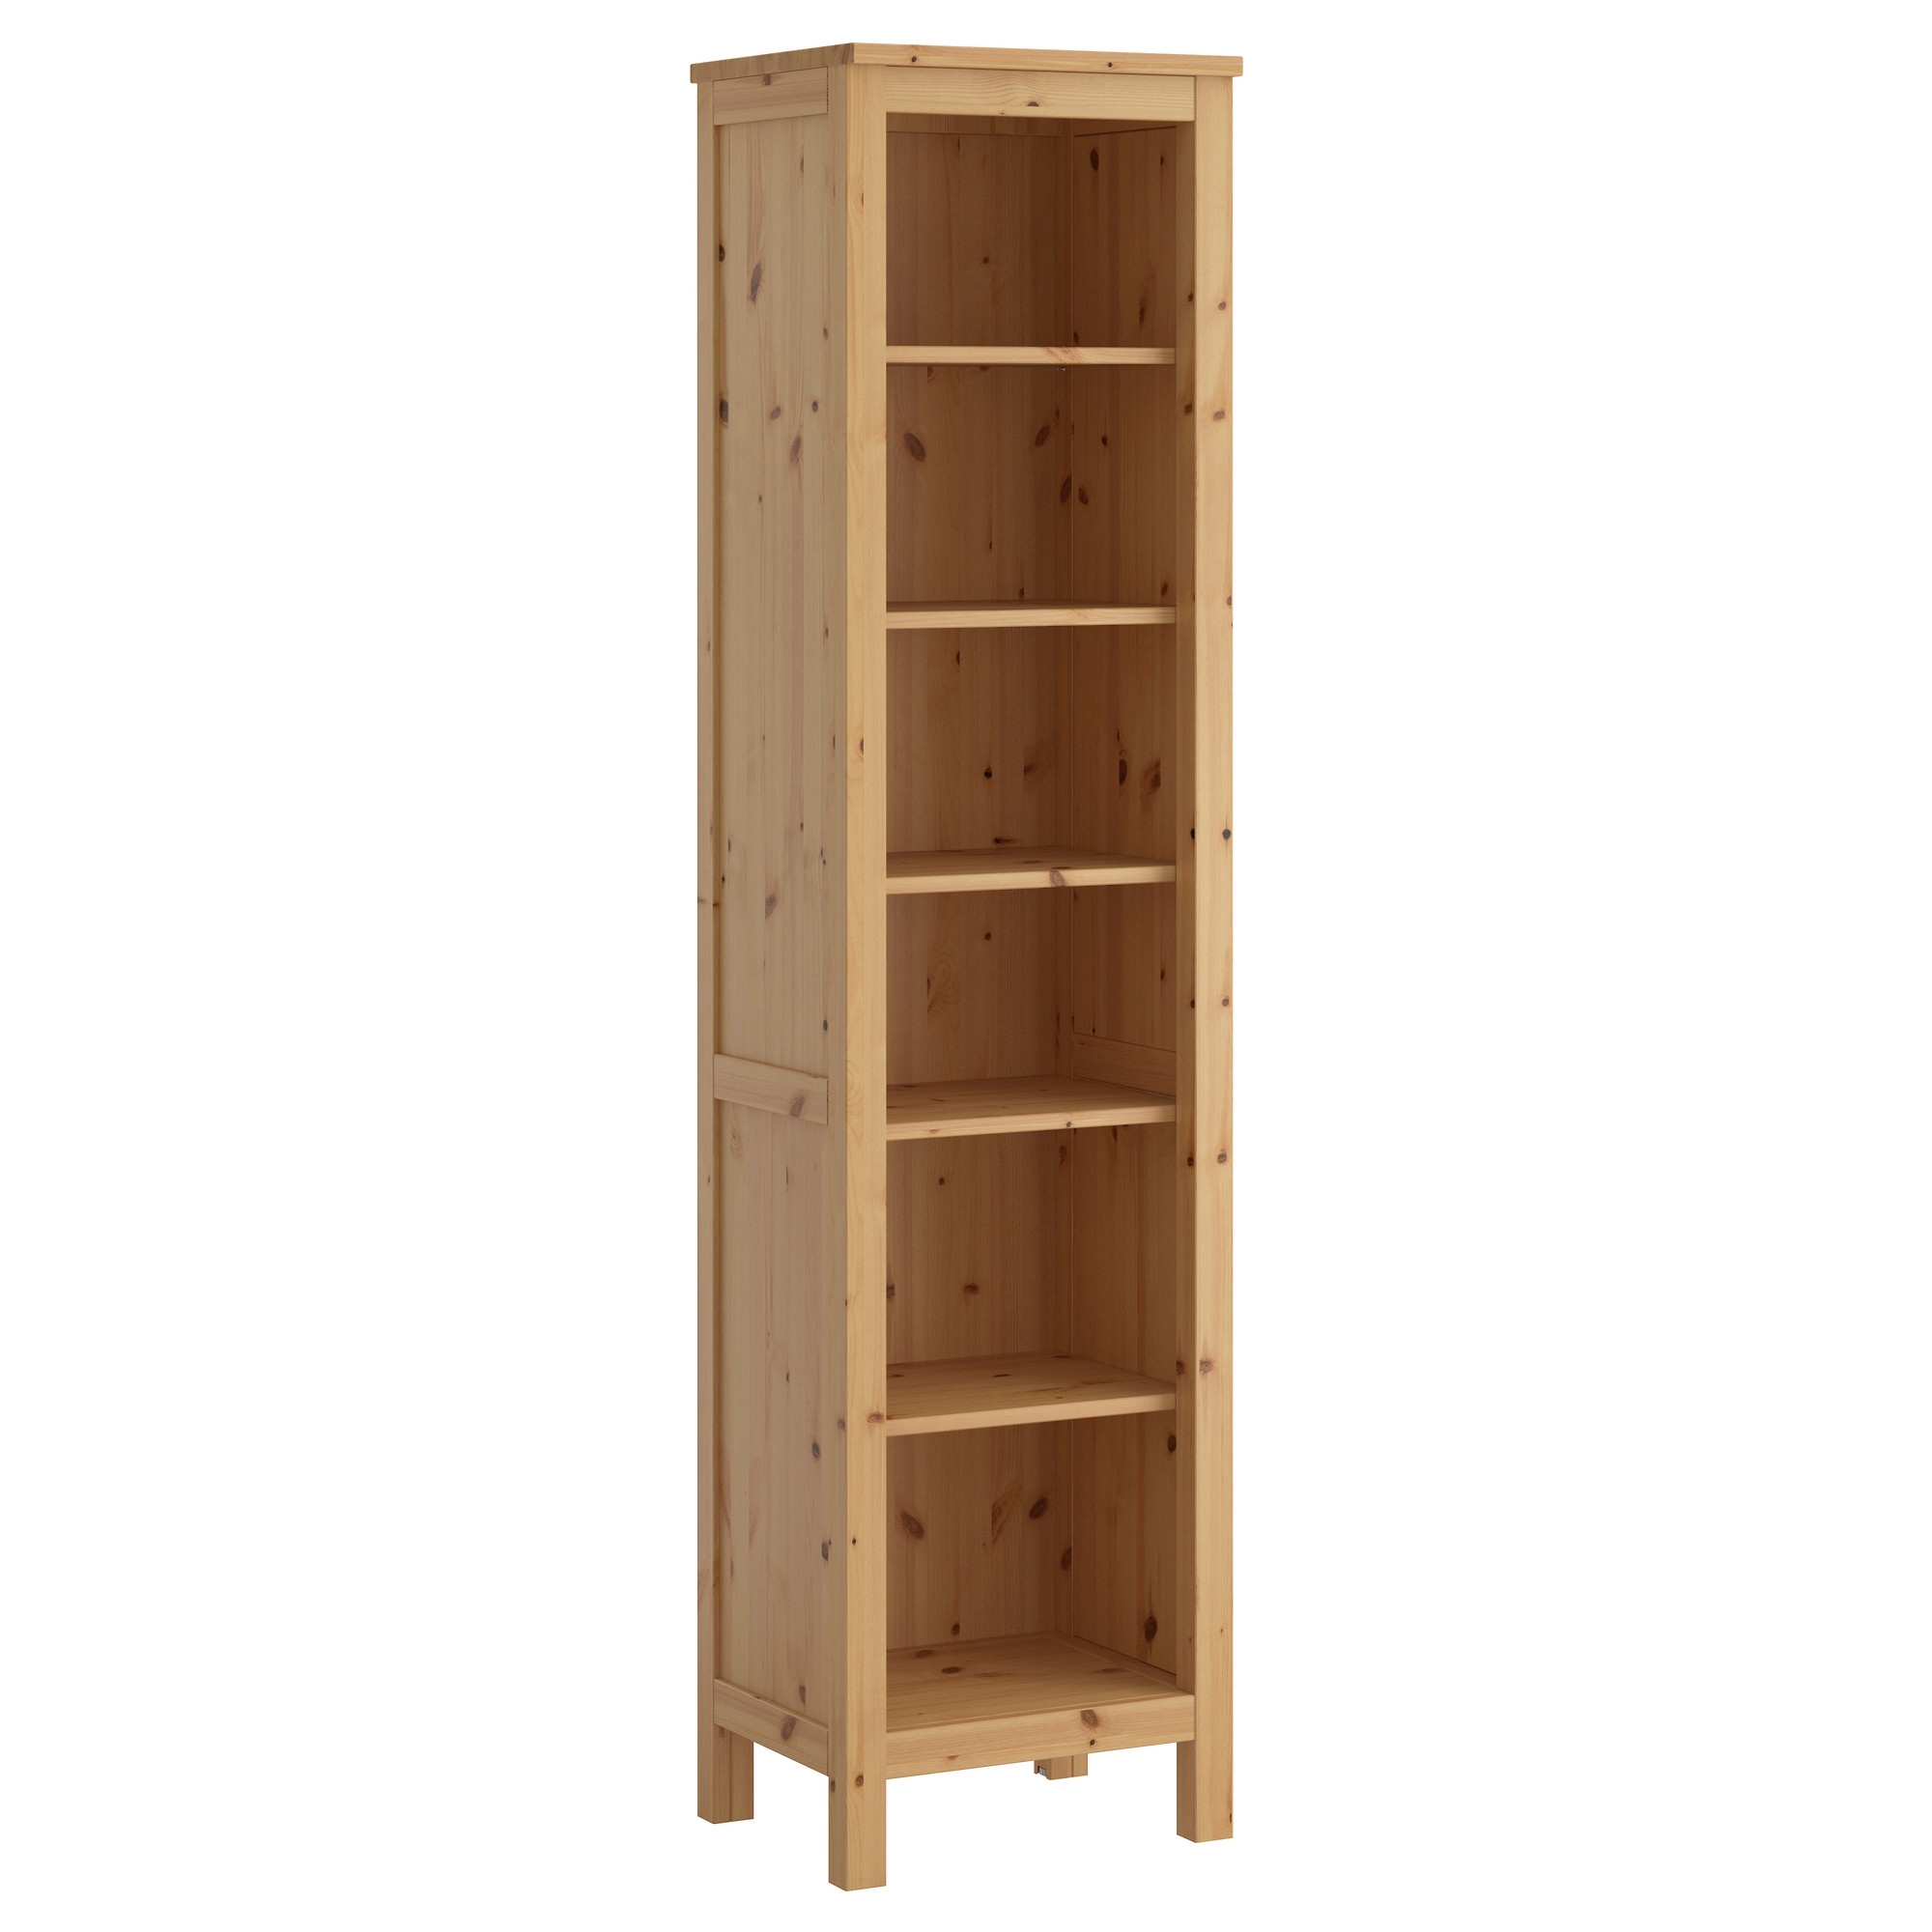 Ikea Pertaining To Ikea Corner Bookcases (Gallery 15 of 15)